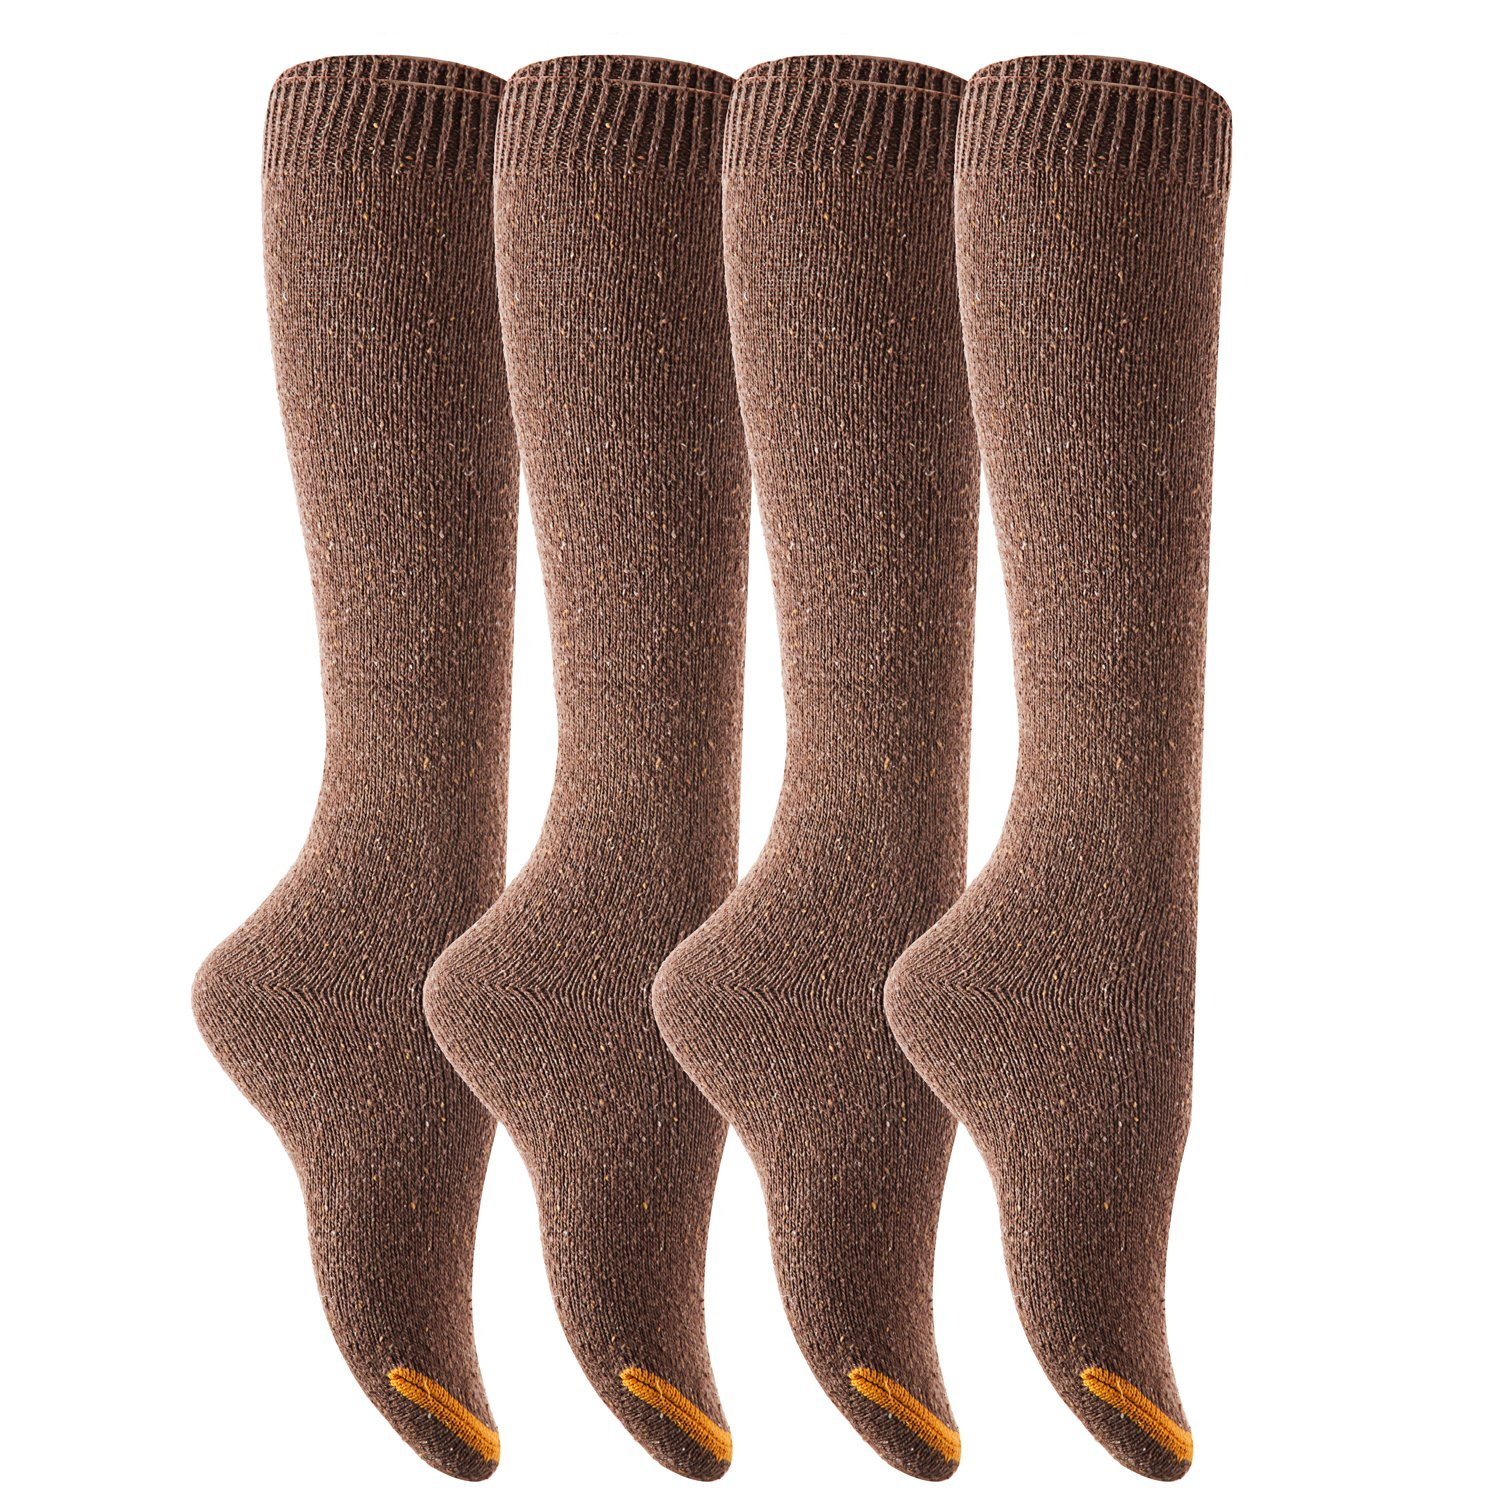 34925790b Get Quotations · Lovely Annie Big Girl s 4 Pairs Pack Knee-High Cotton Boot  Socks H158212 Size L